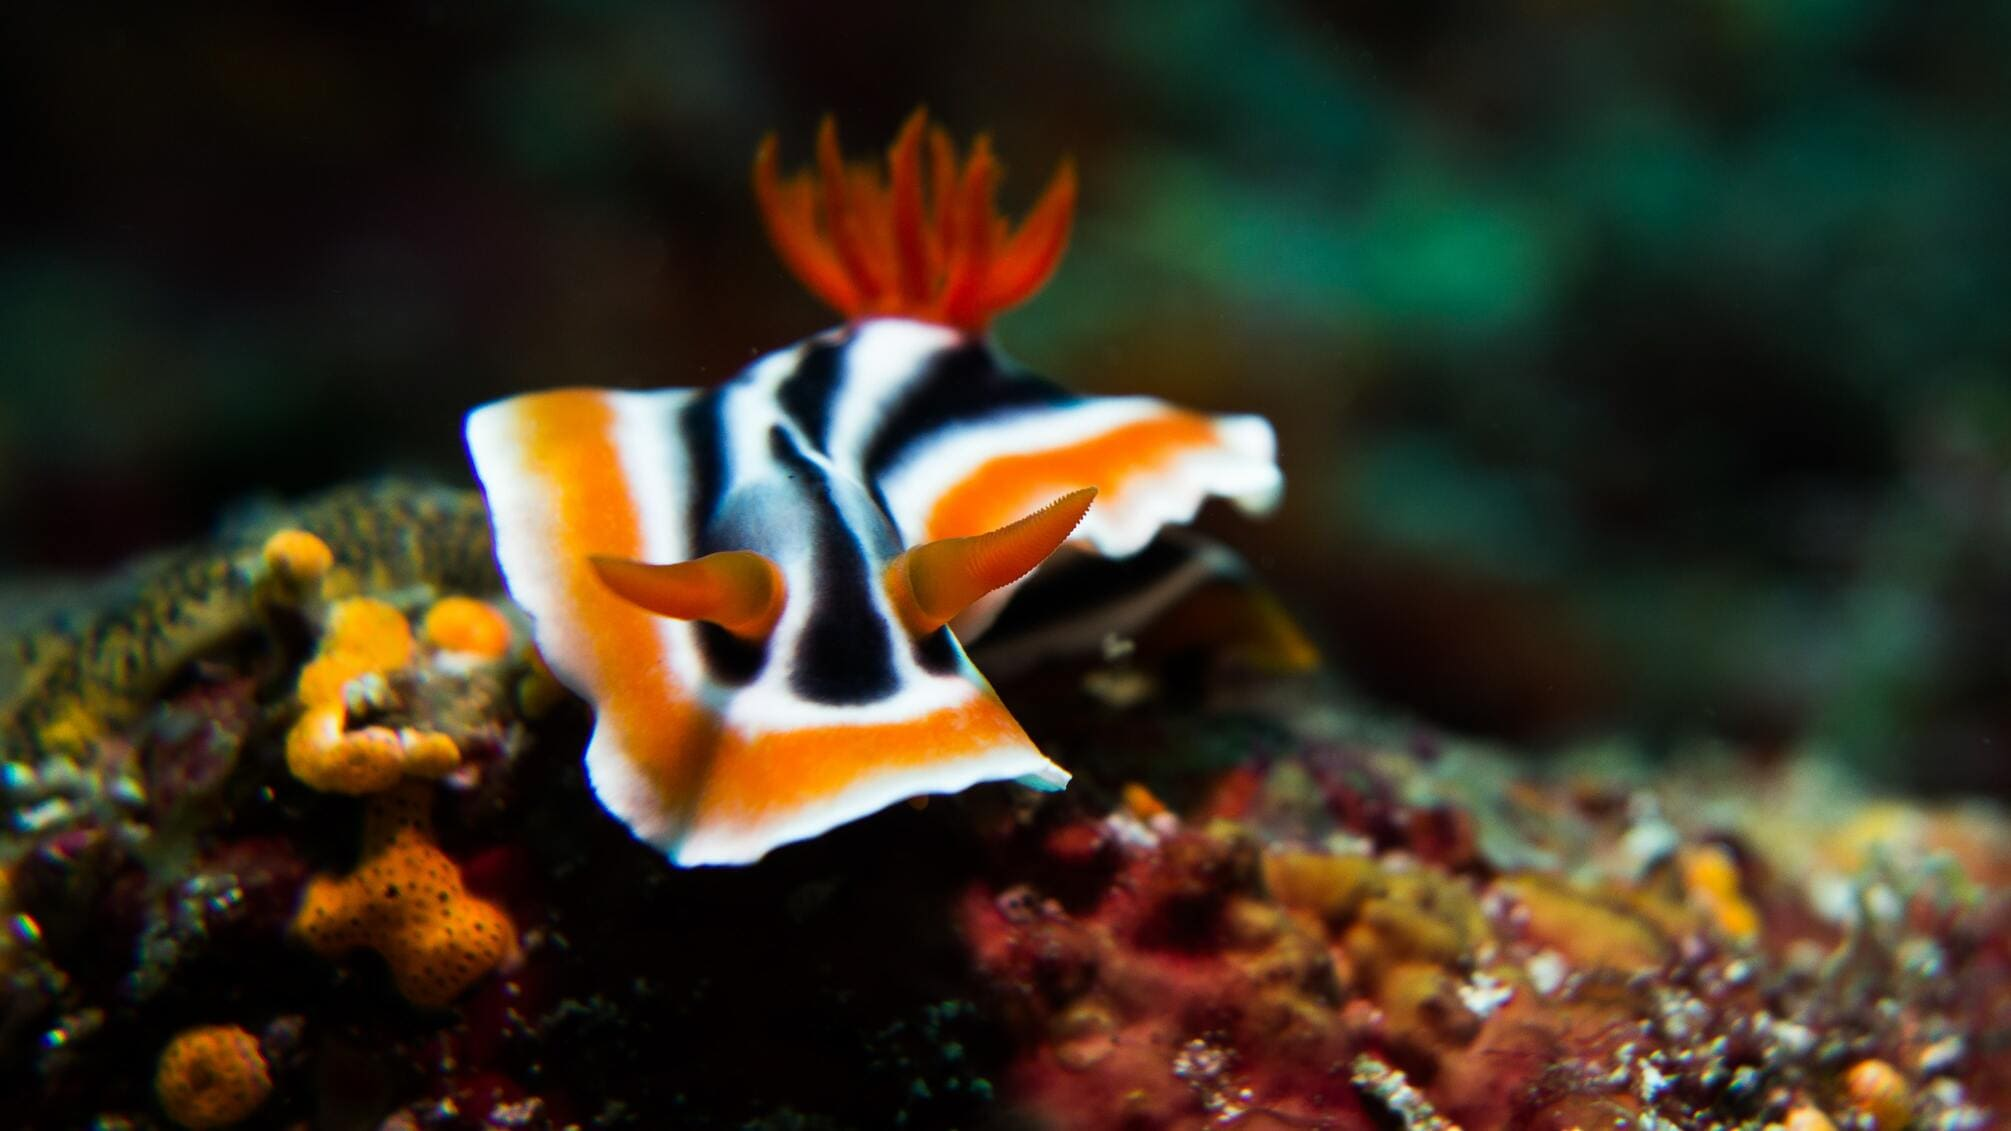 A black and yellow nudibranch